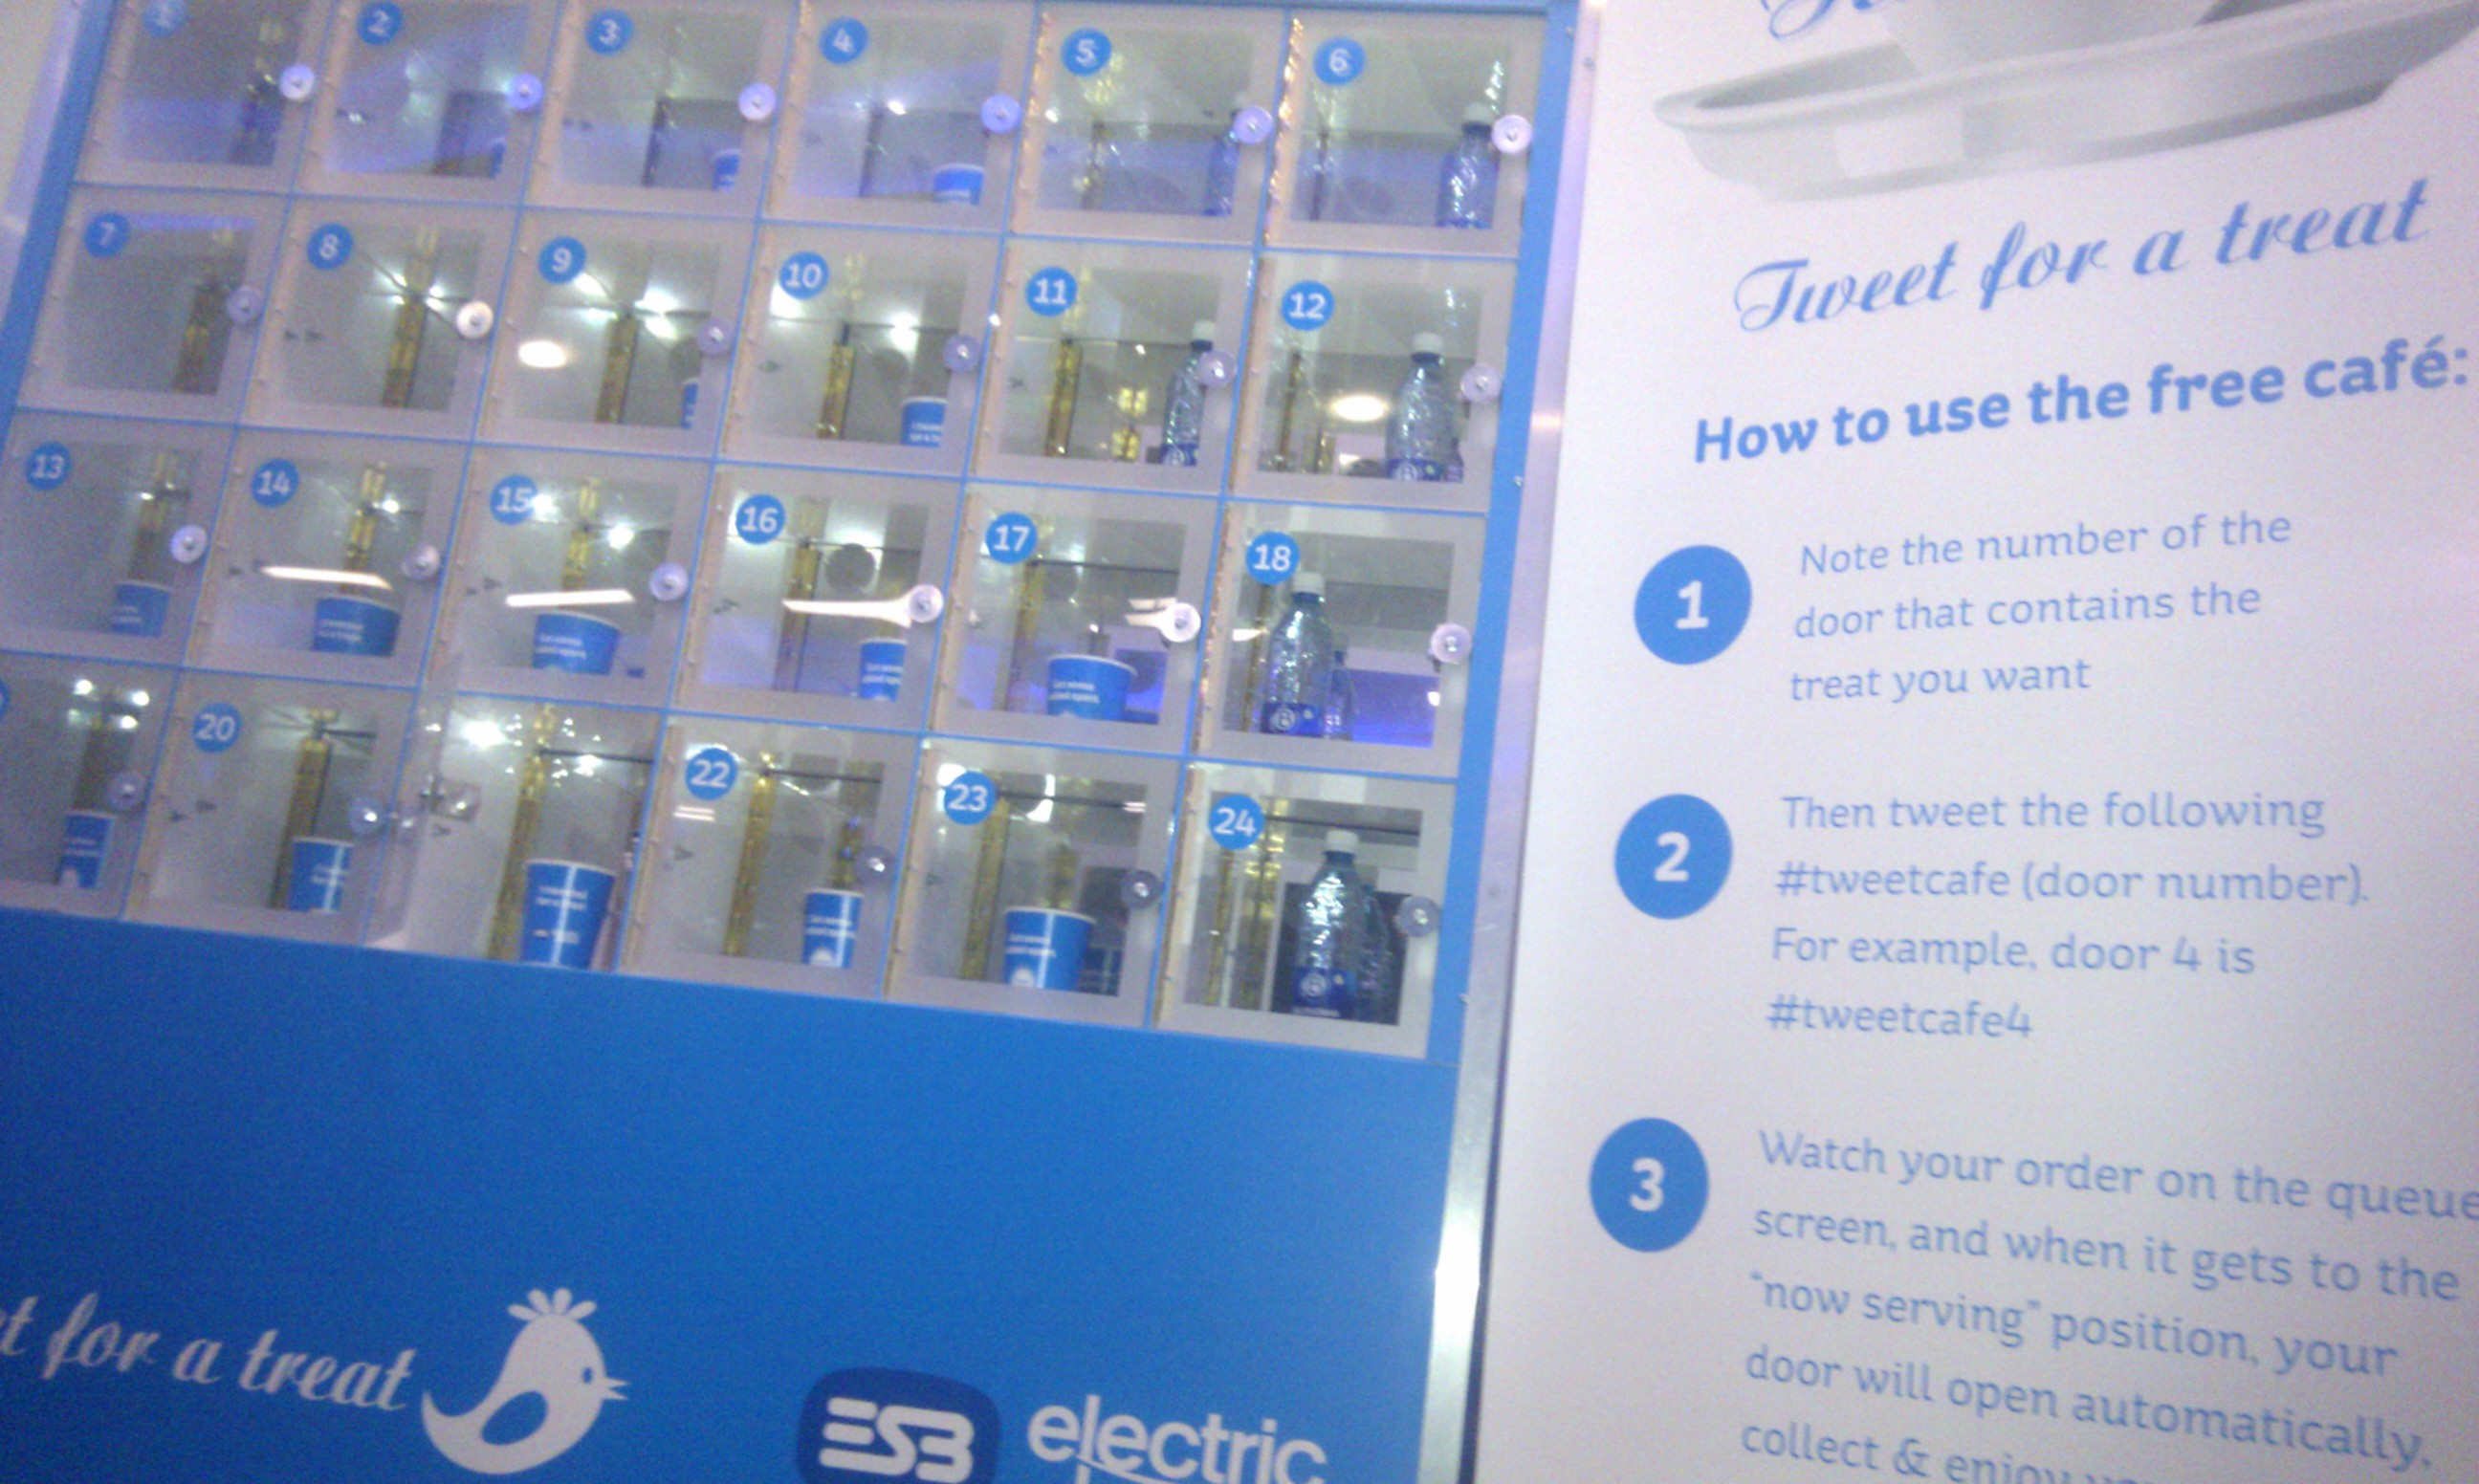 Electric Ireland Tweet for a treat Twitter Café system